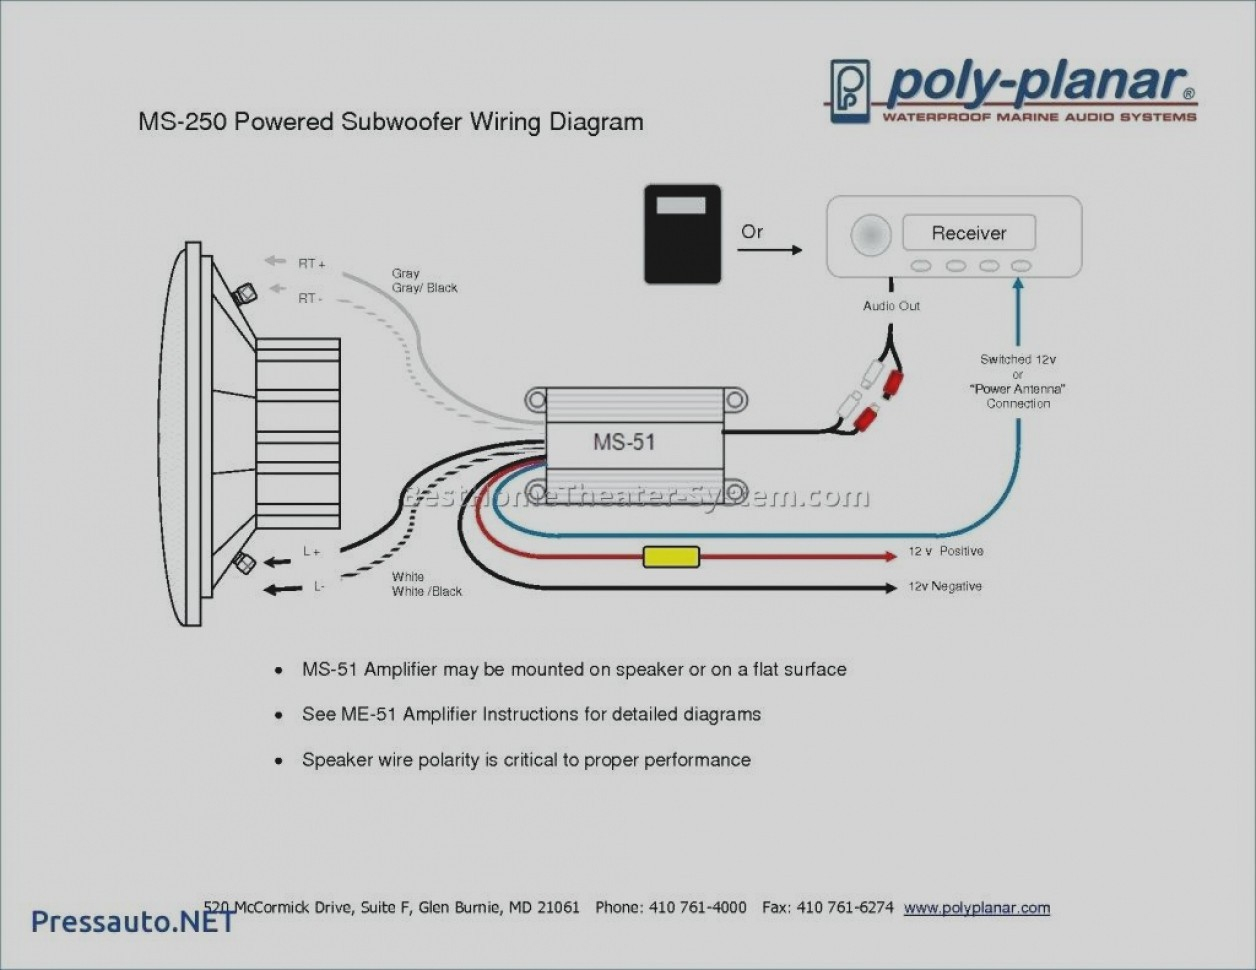 3 Kicker Cvr 12 Series Wiring Diagram Free Download | Wiring Diagram - Kicker Cvr 12 Wiring Diagram